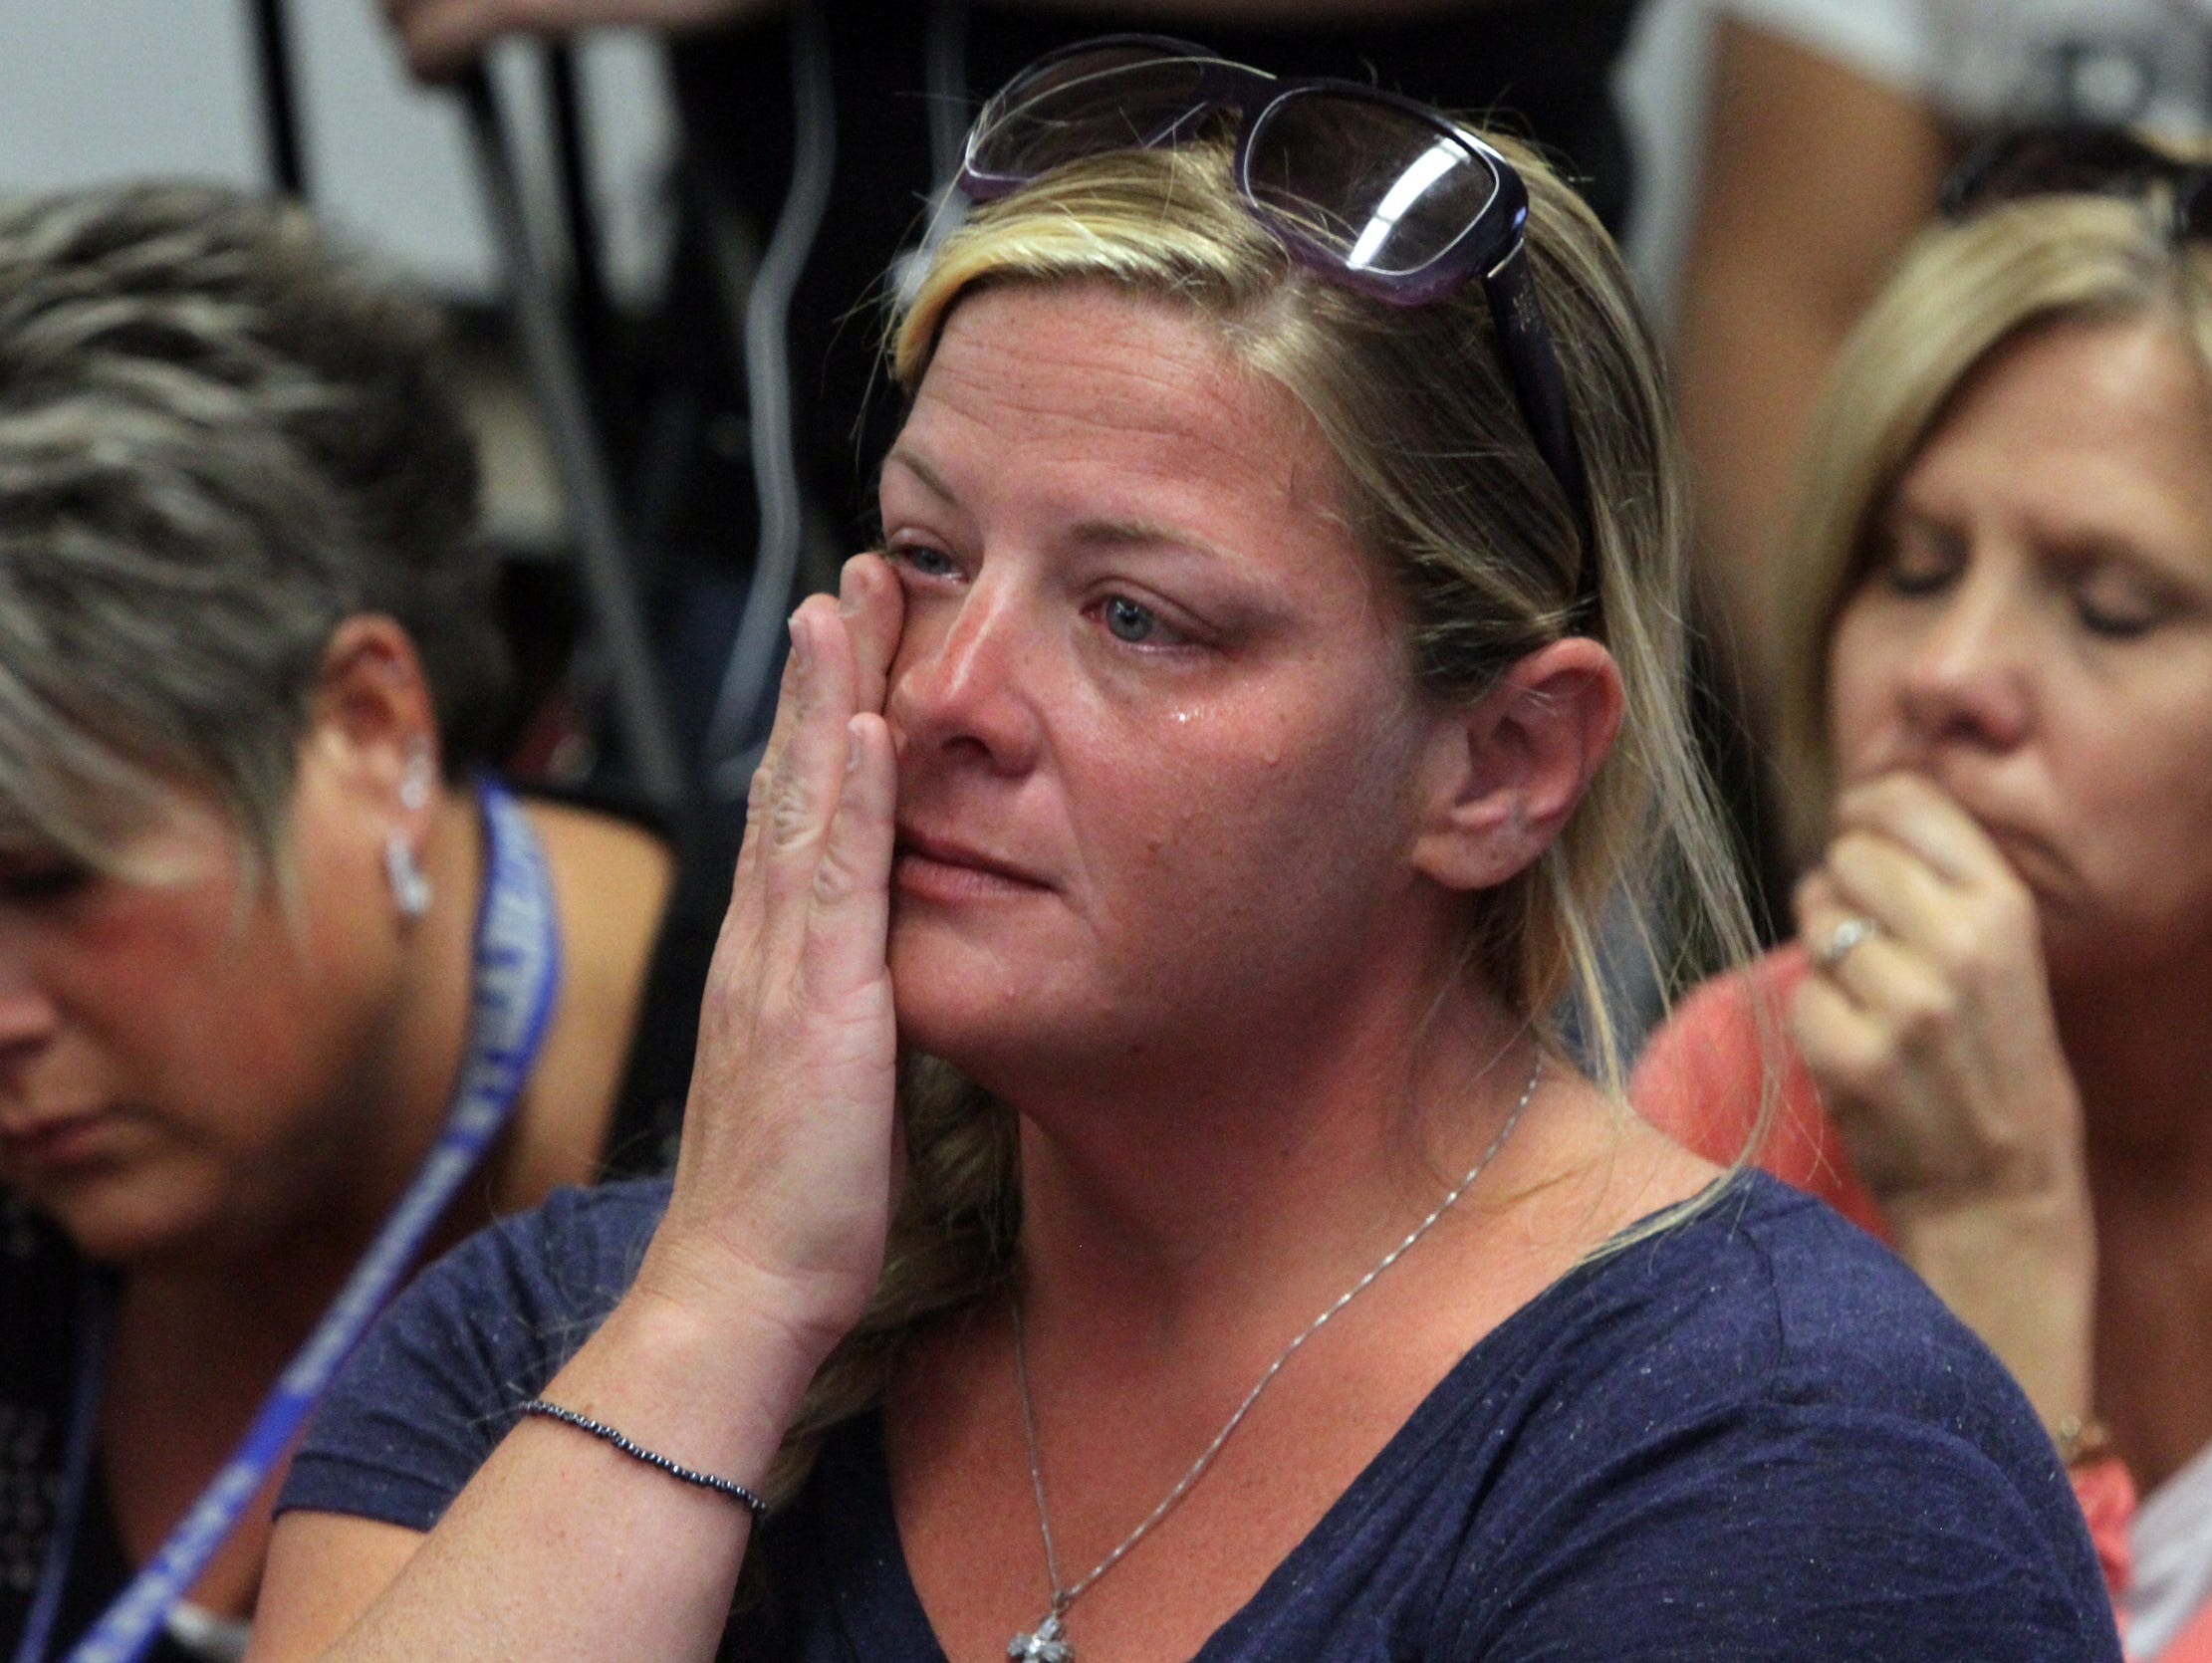 A concerned mother of a Sayreville High School football player wipes tears from her eye during the press conference. On Friday October 3,,2014 Photo: Mark R. Sullivan/Staff Photographer